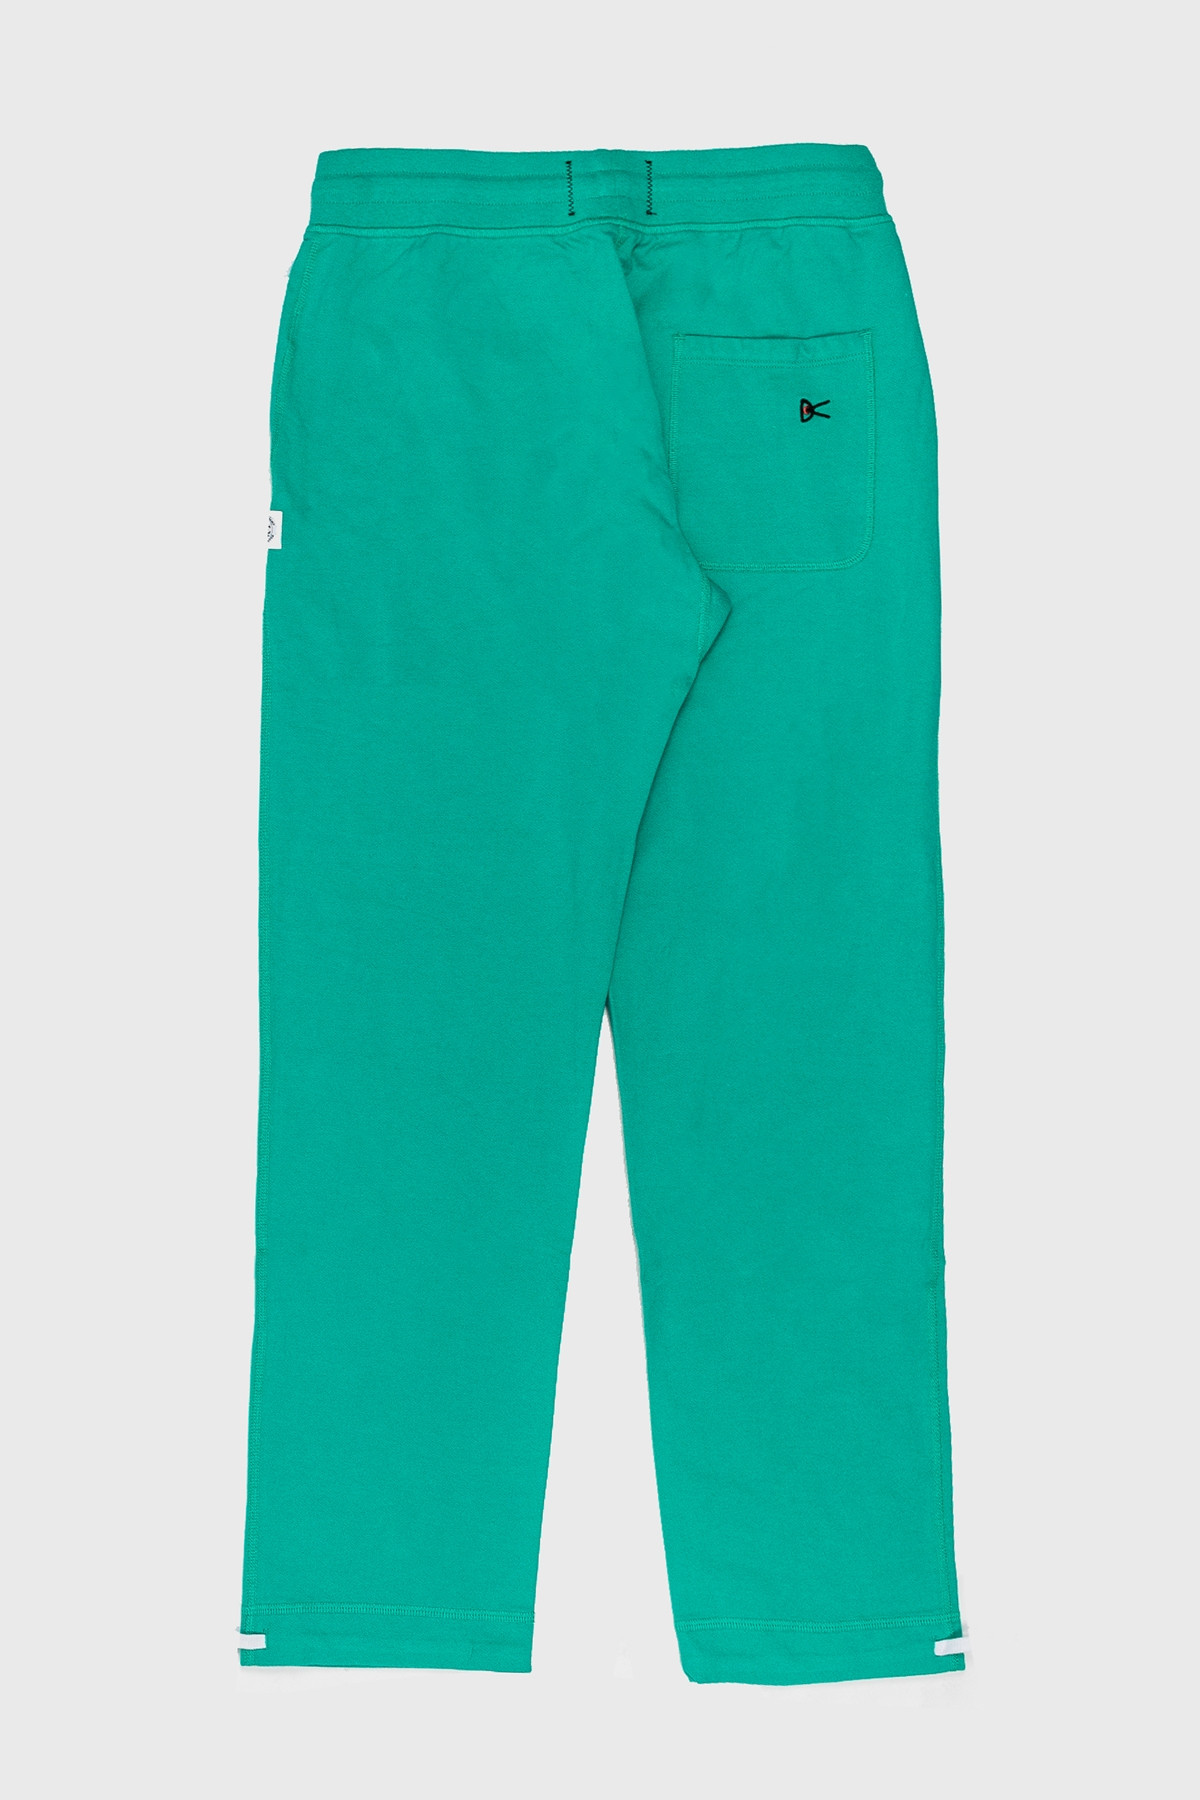 District Vision x reigning champ - retreat sweatpant - lightweight teal